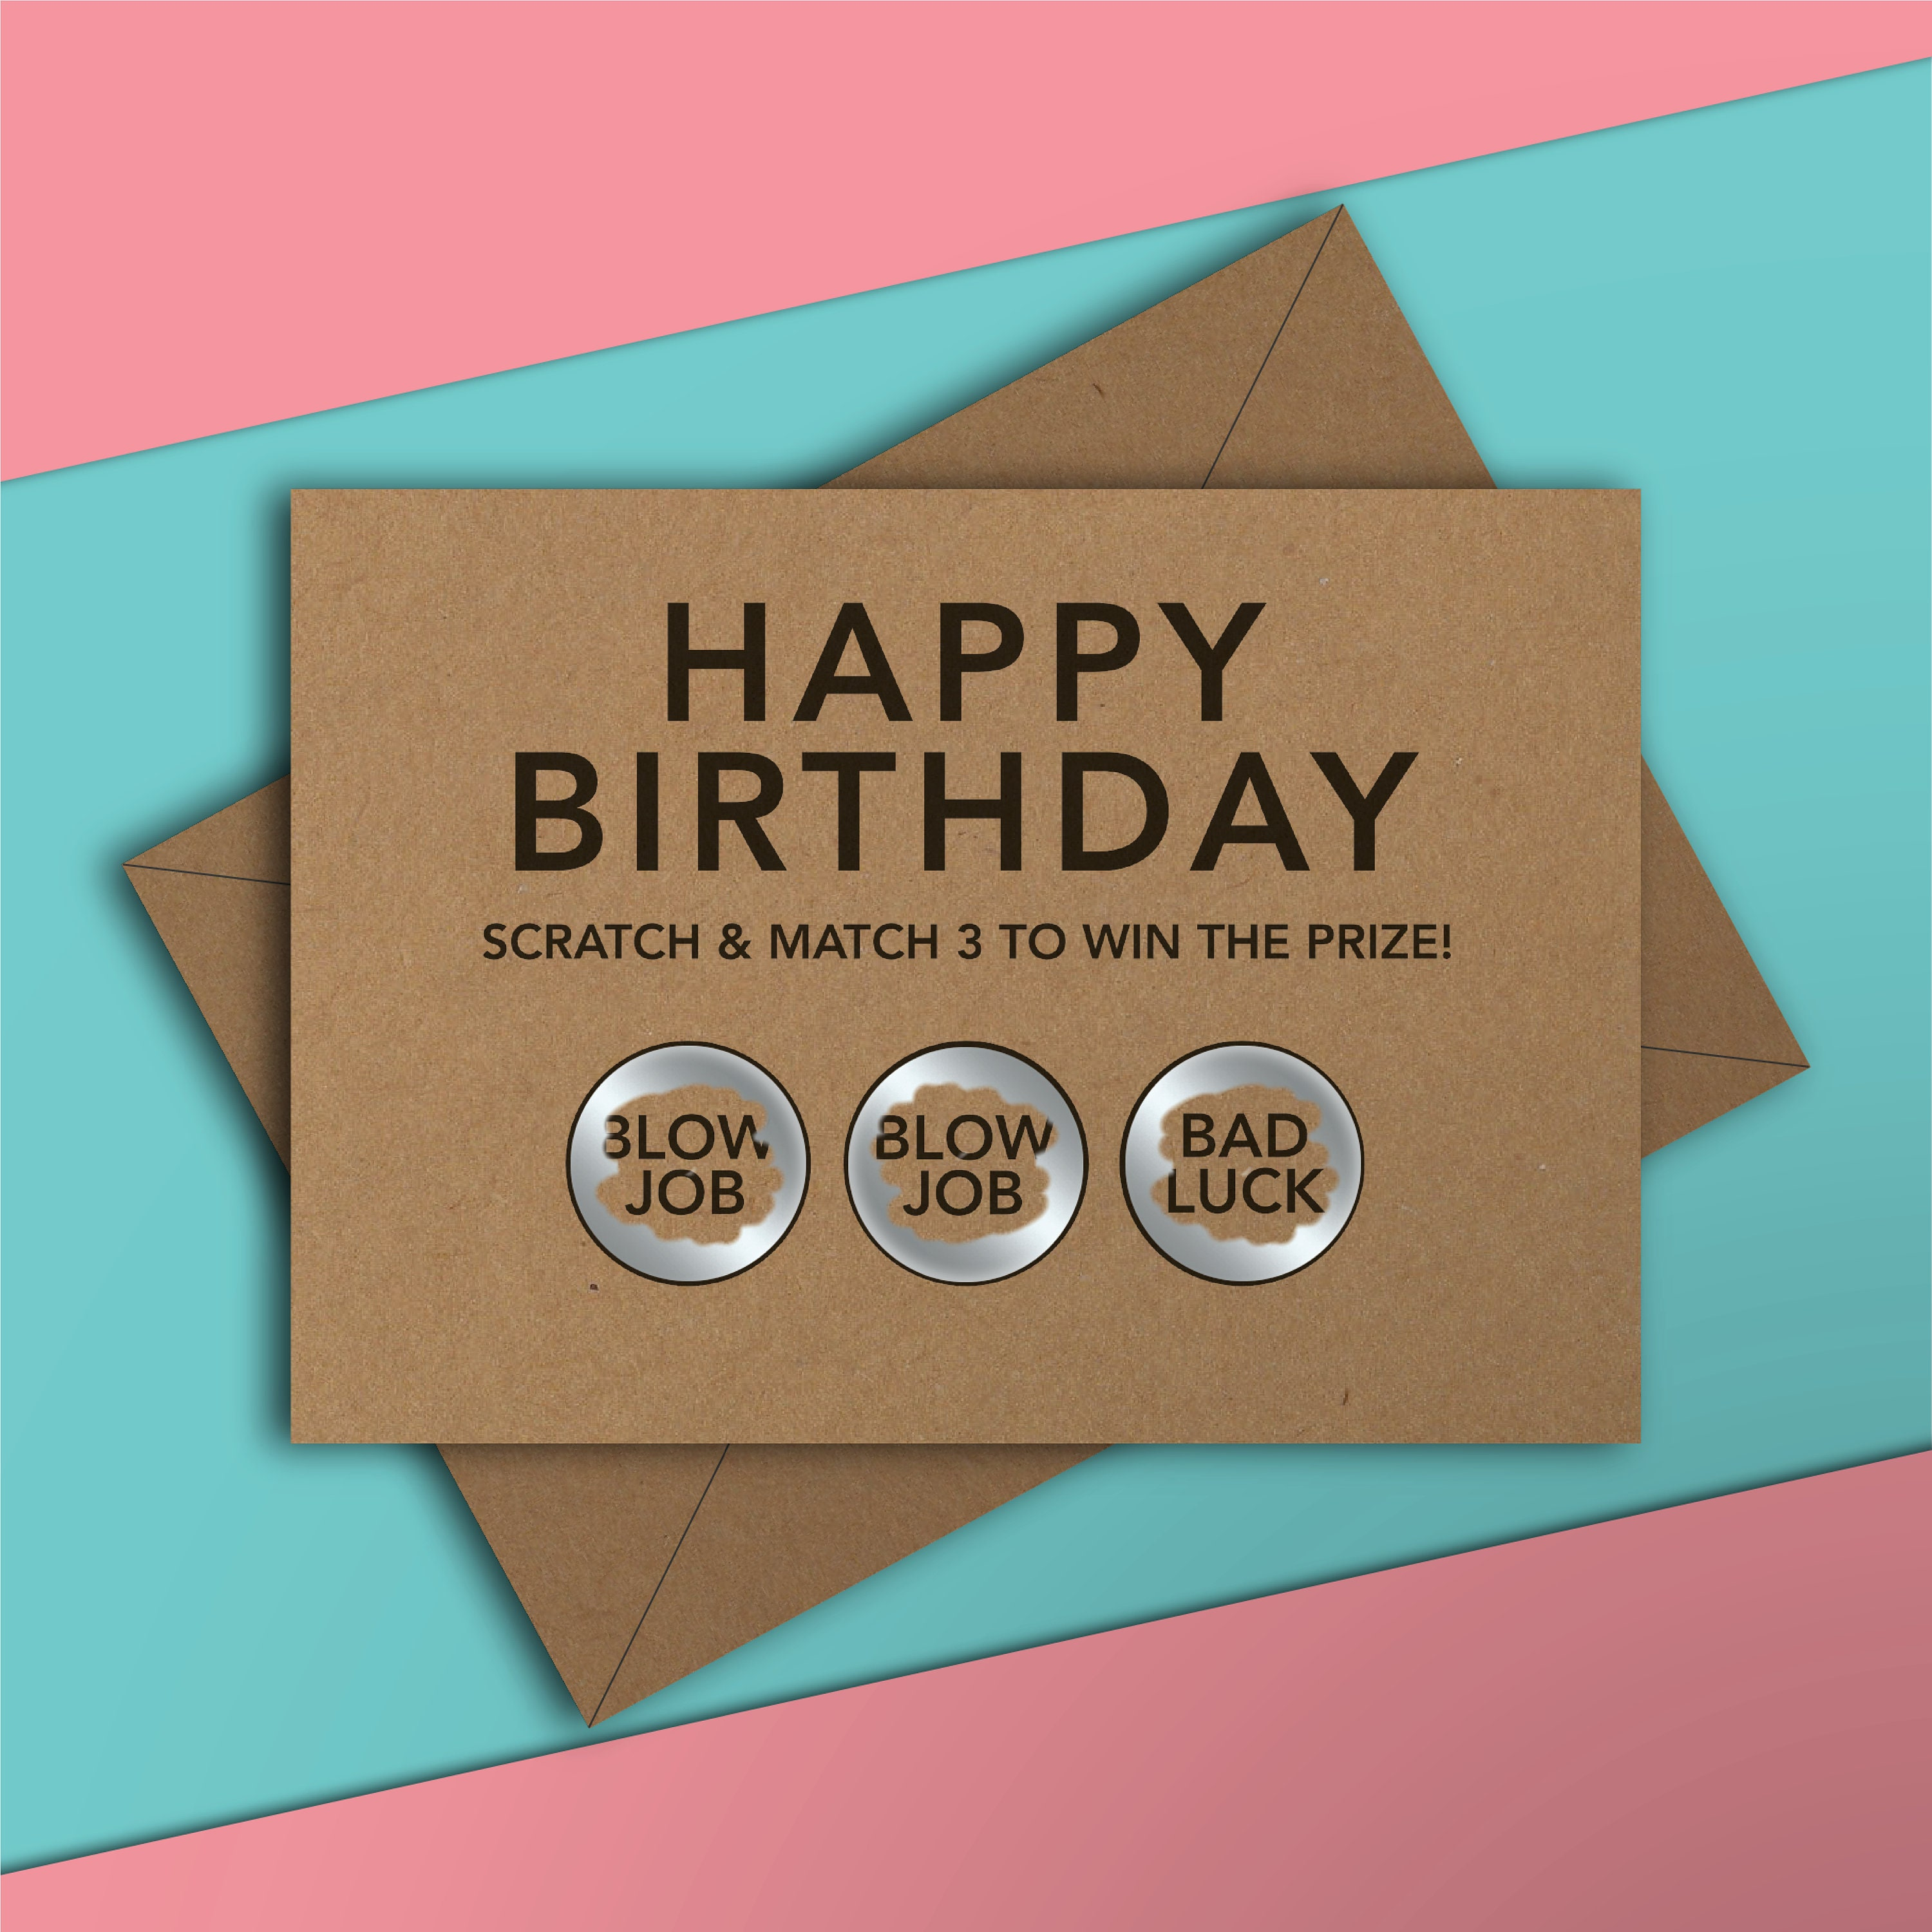 happy birthday funny scratch card rude adult naughty 18  etsy